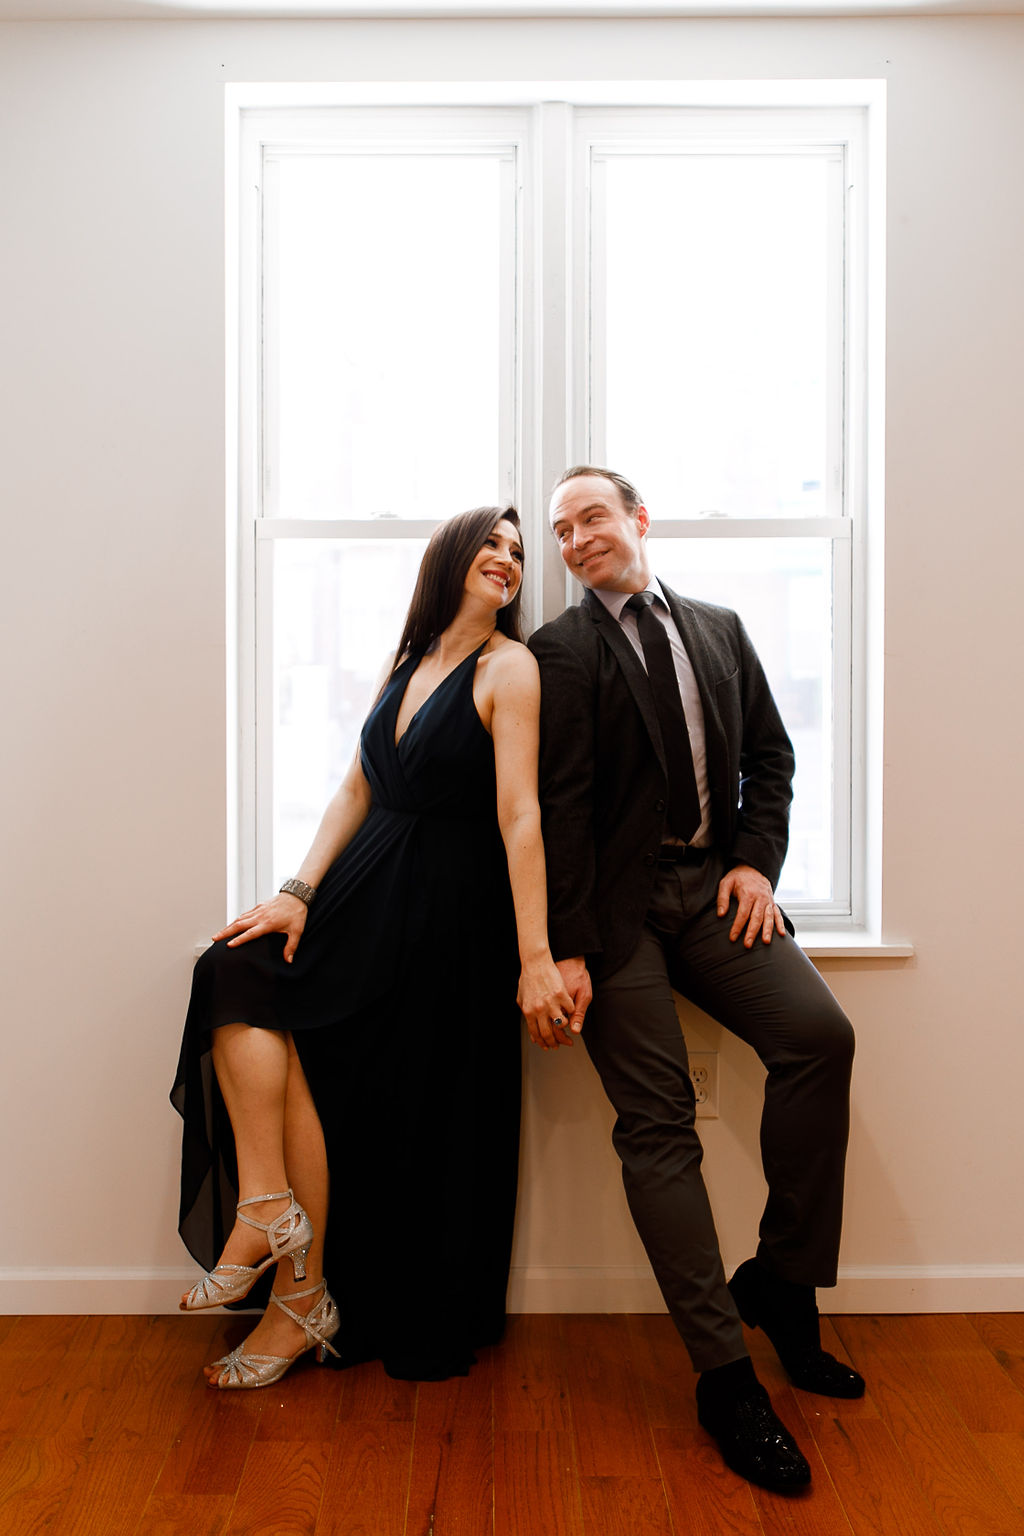 G&G New Home Philly LGBTQ Engagement Session4.jpg